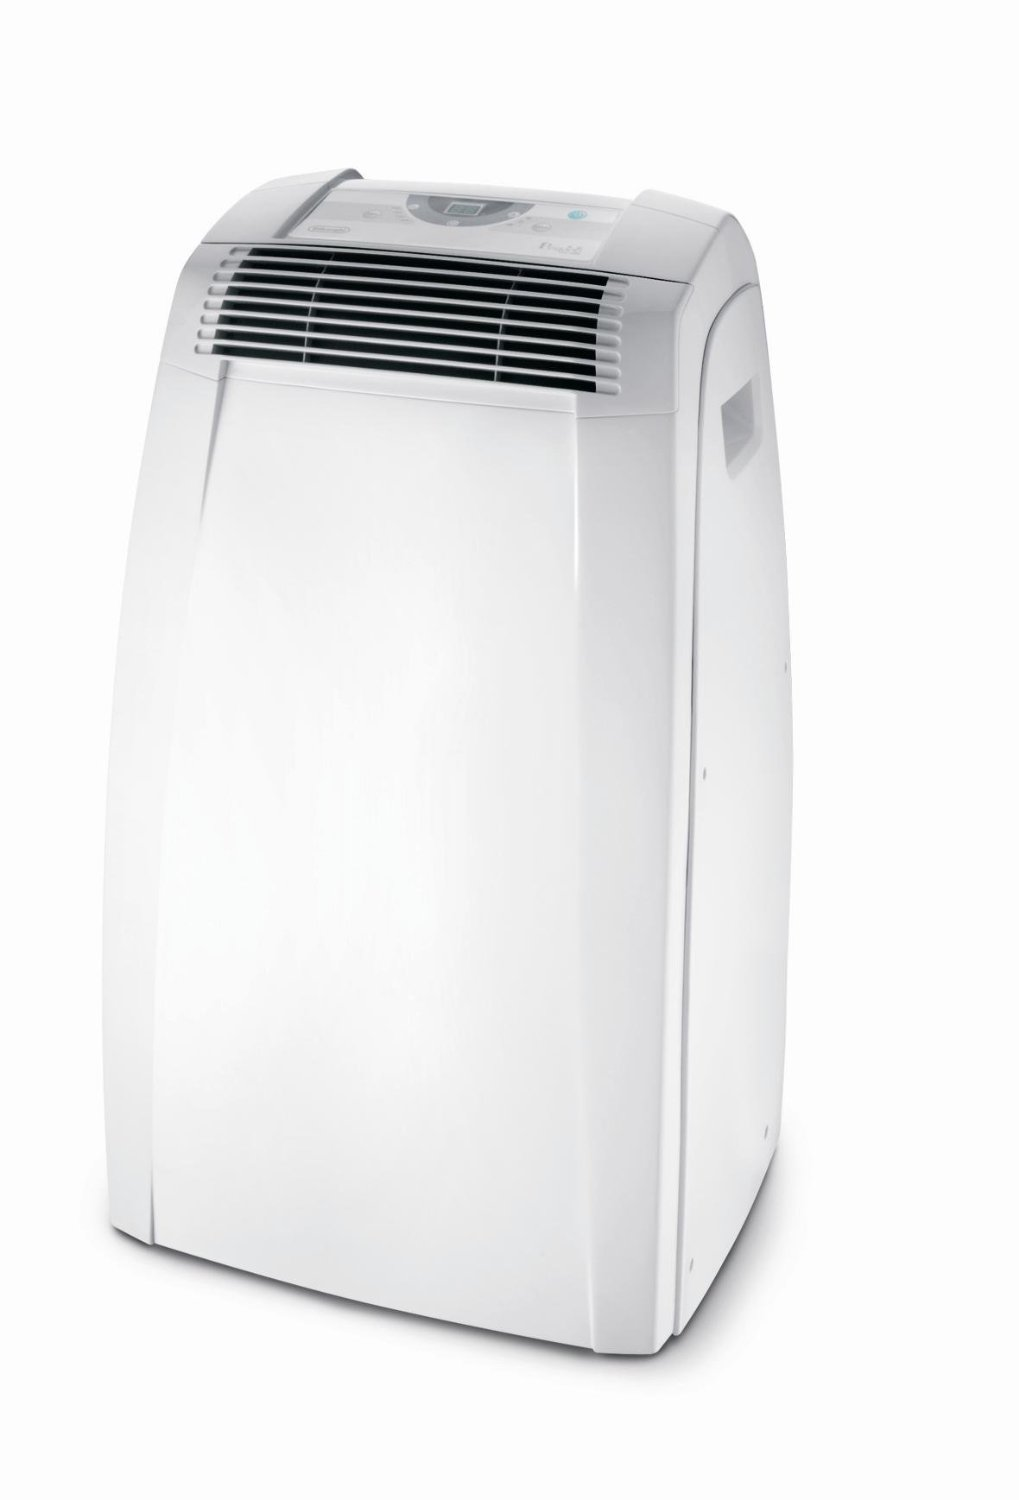 DeLonghi Portable Air Conditioner w/ Remote (Refurbished)